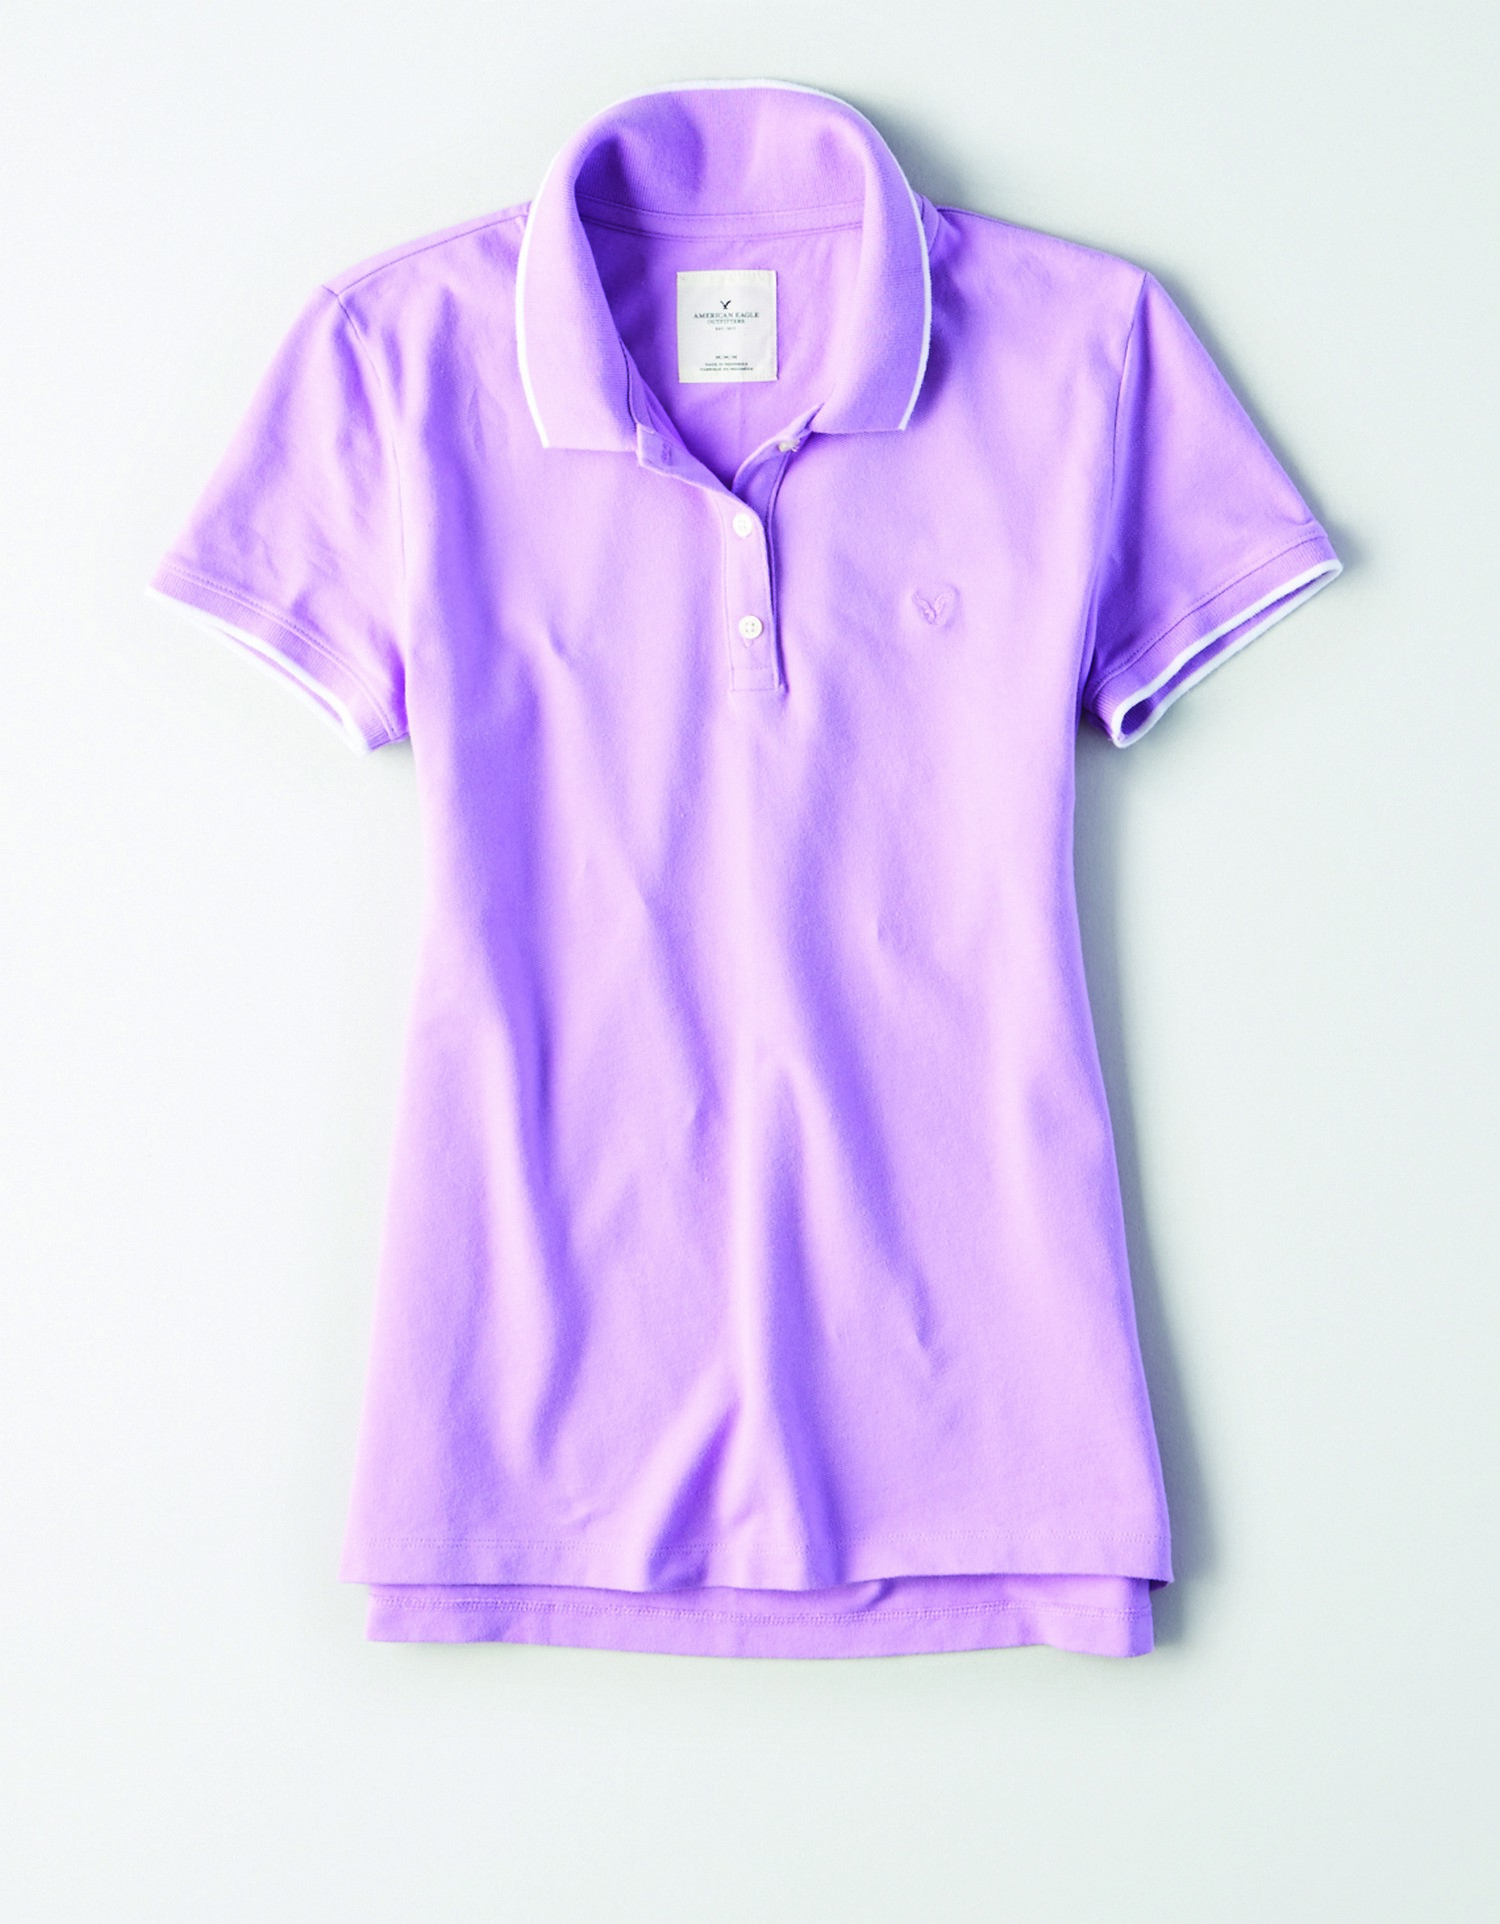 AE - INTL - Apparel - W - Tipped Polo - Light Purple with white Tipping - Light Purple embroidered eagle on left chest JP